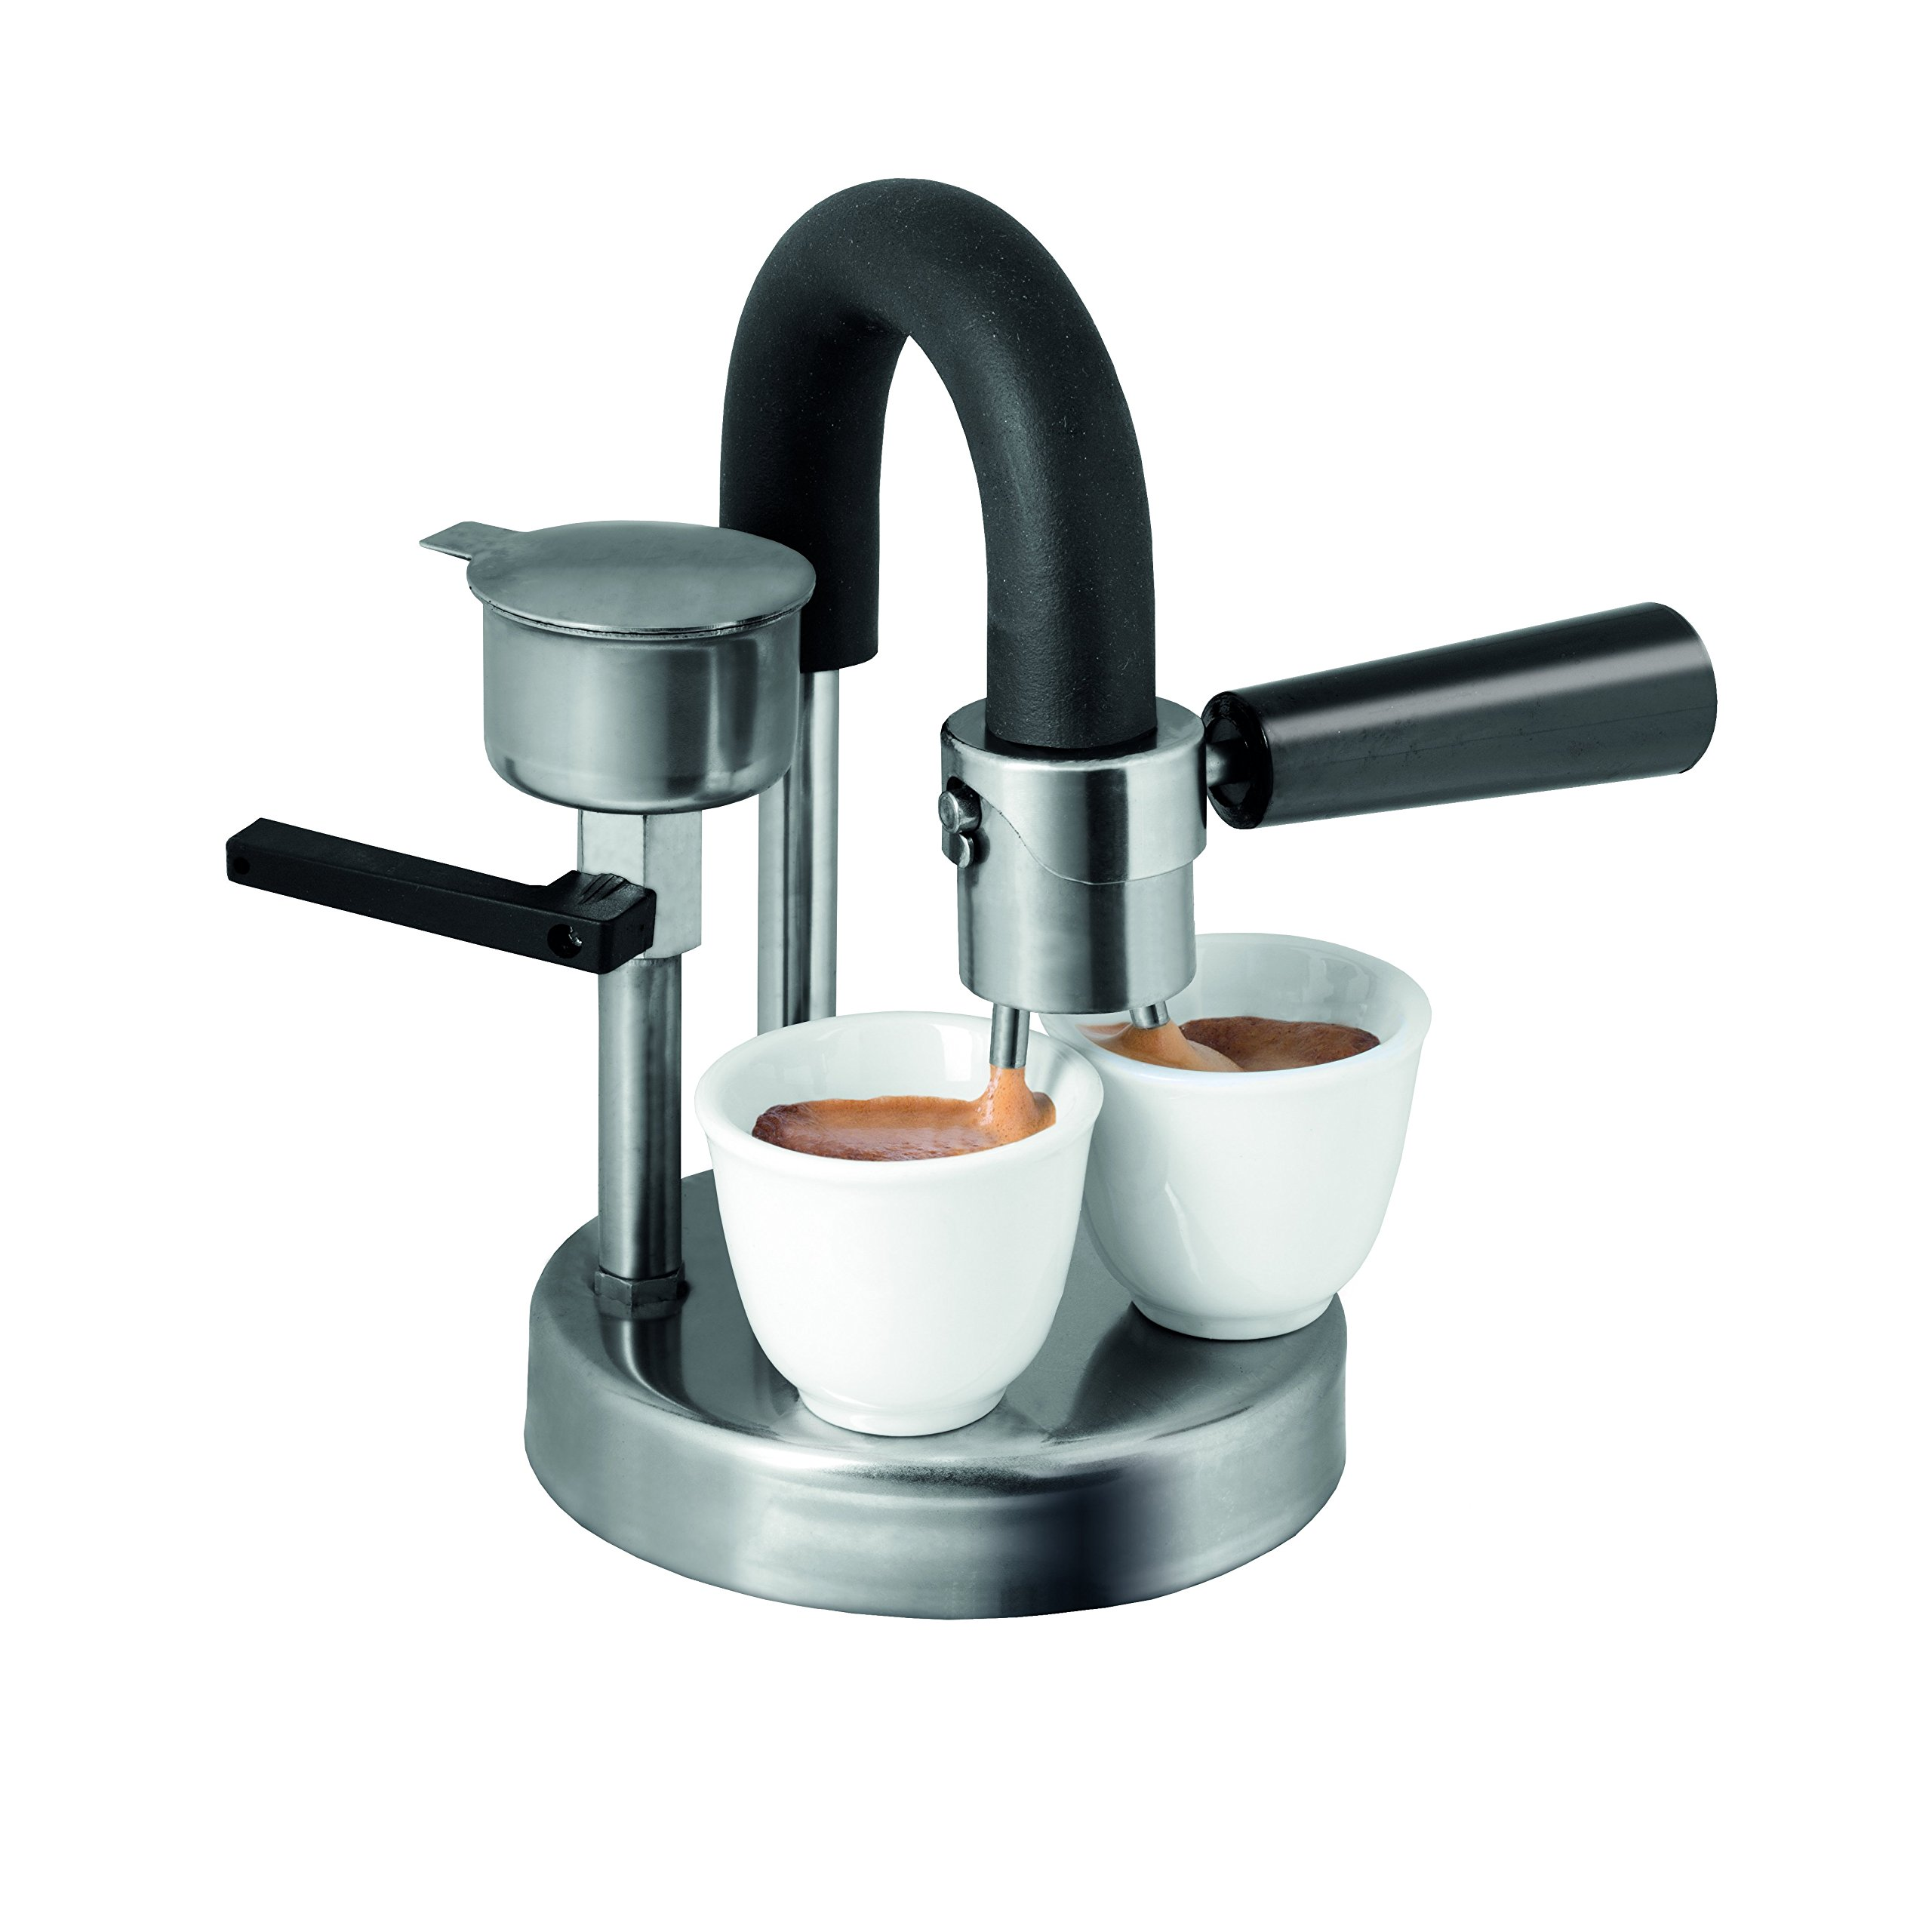 KAMIRA Moka Express 1/2 Cups Stovetop Espresso Maker. The perfect gift! Made in  Italy by KAMIRA (Image #3)